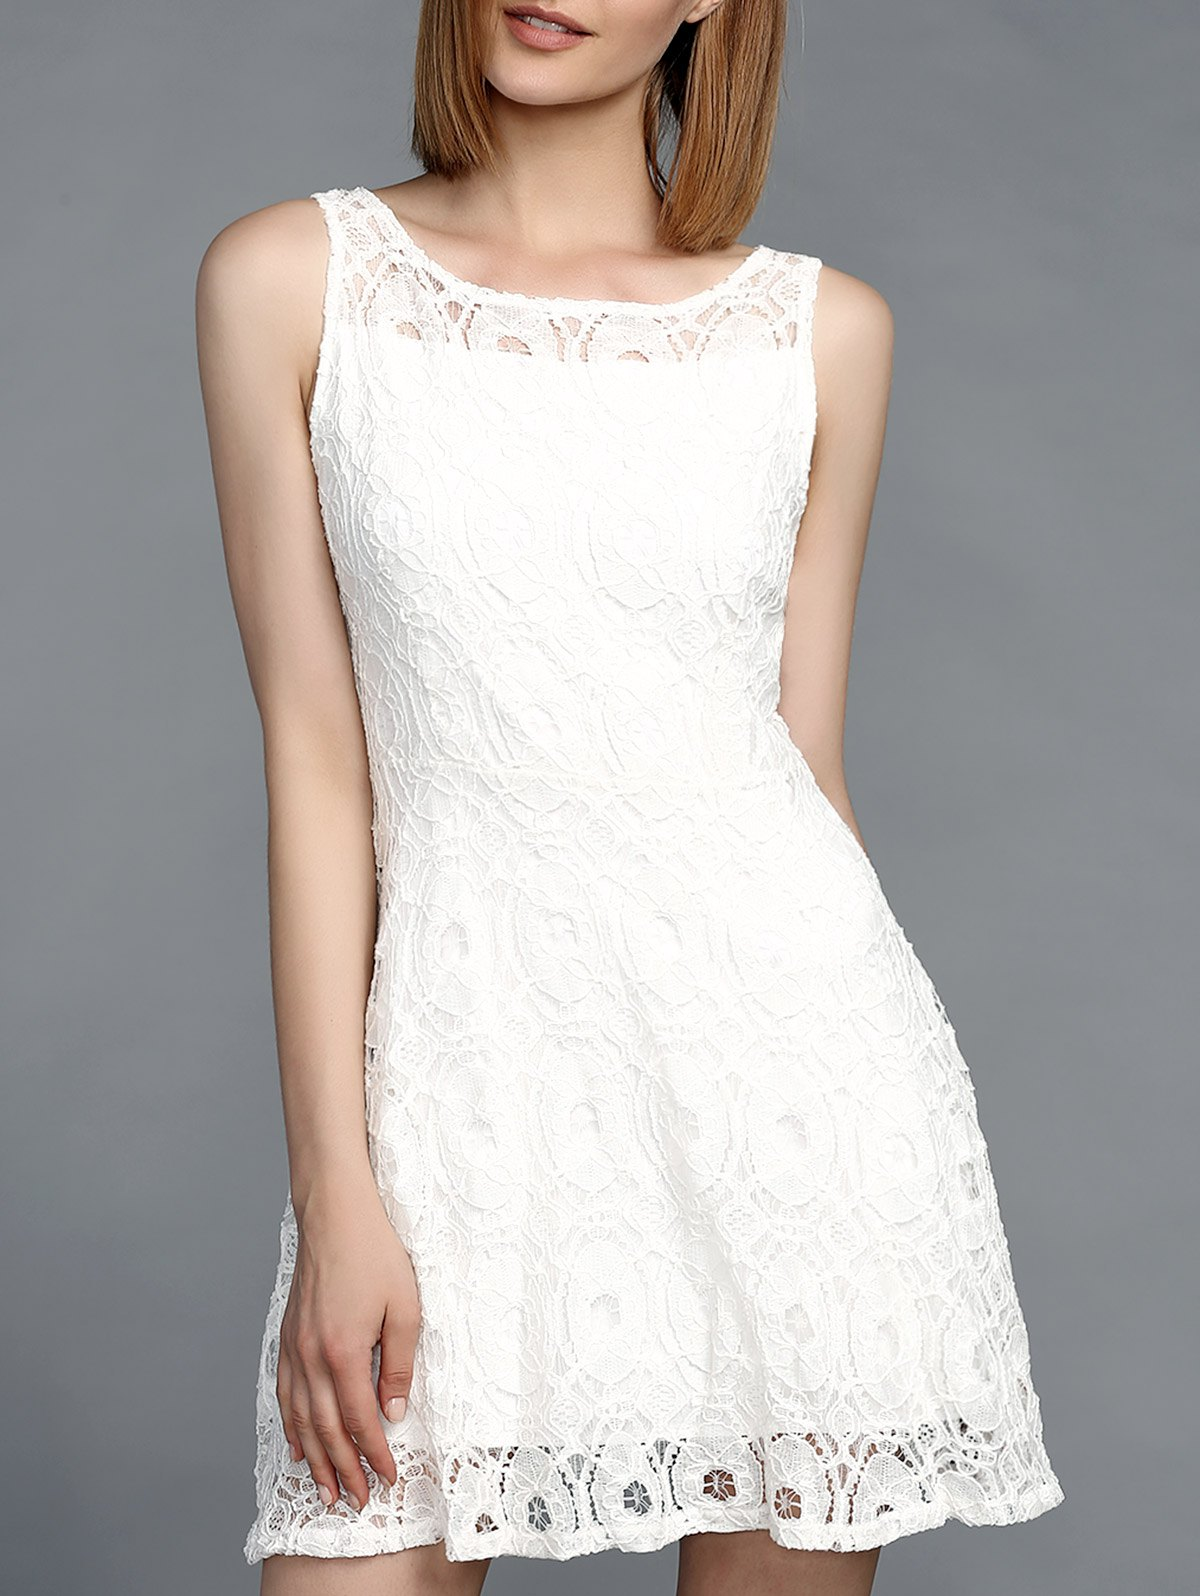 Jewel Neck Sleeveless Lace Dress For Women